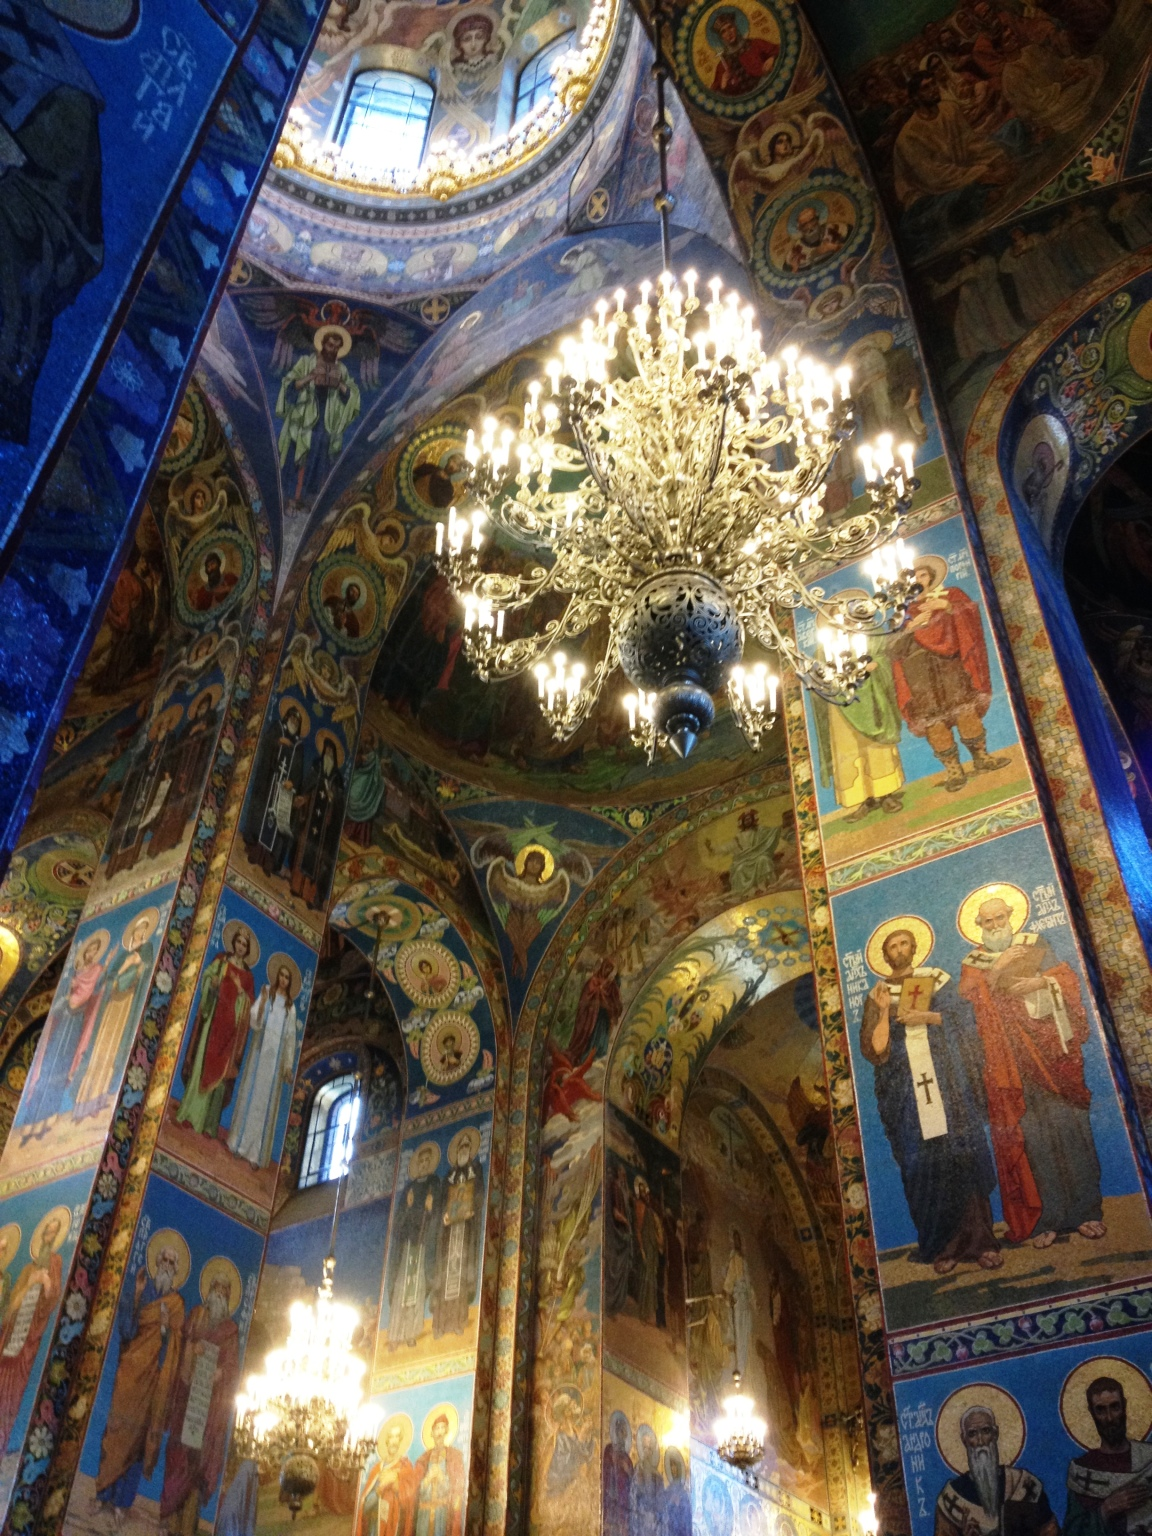 Exquisite interior of the Spilled Blood church